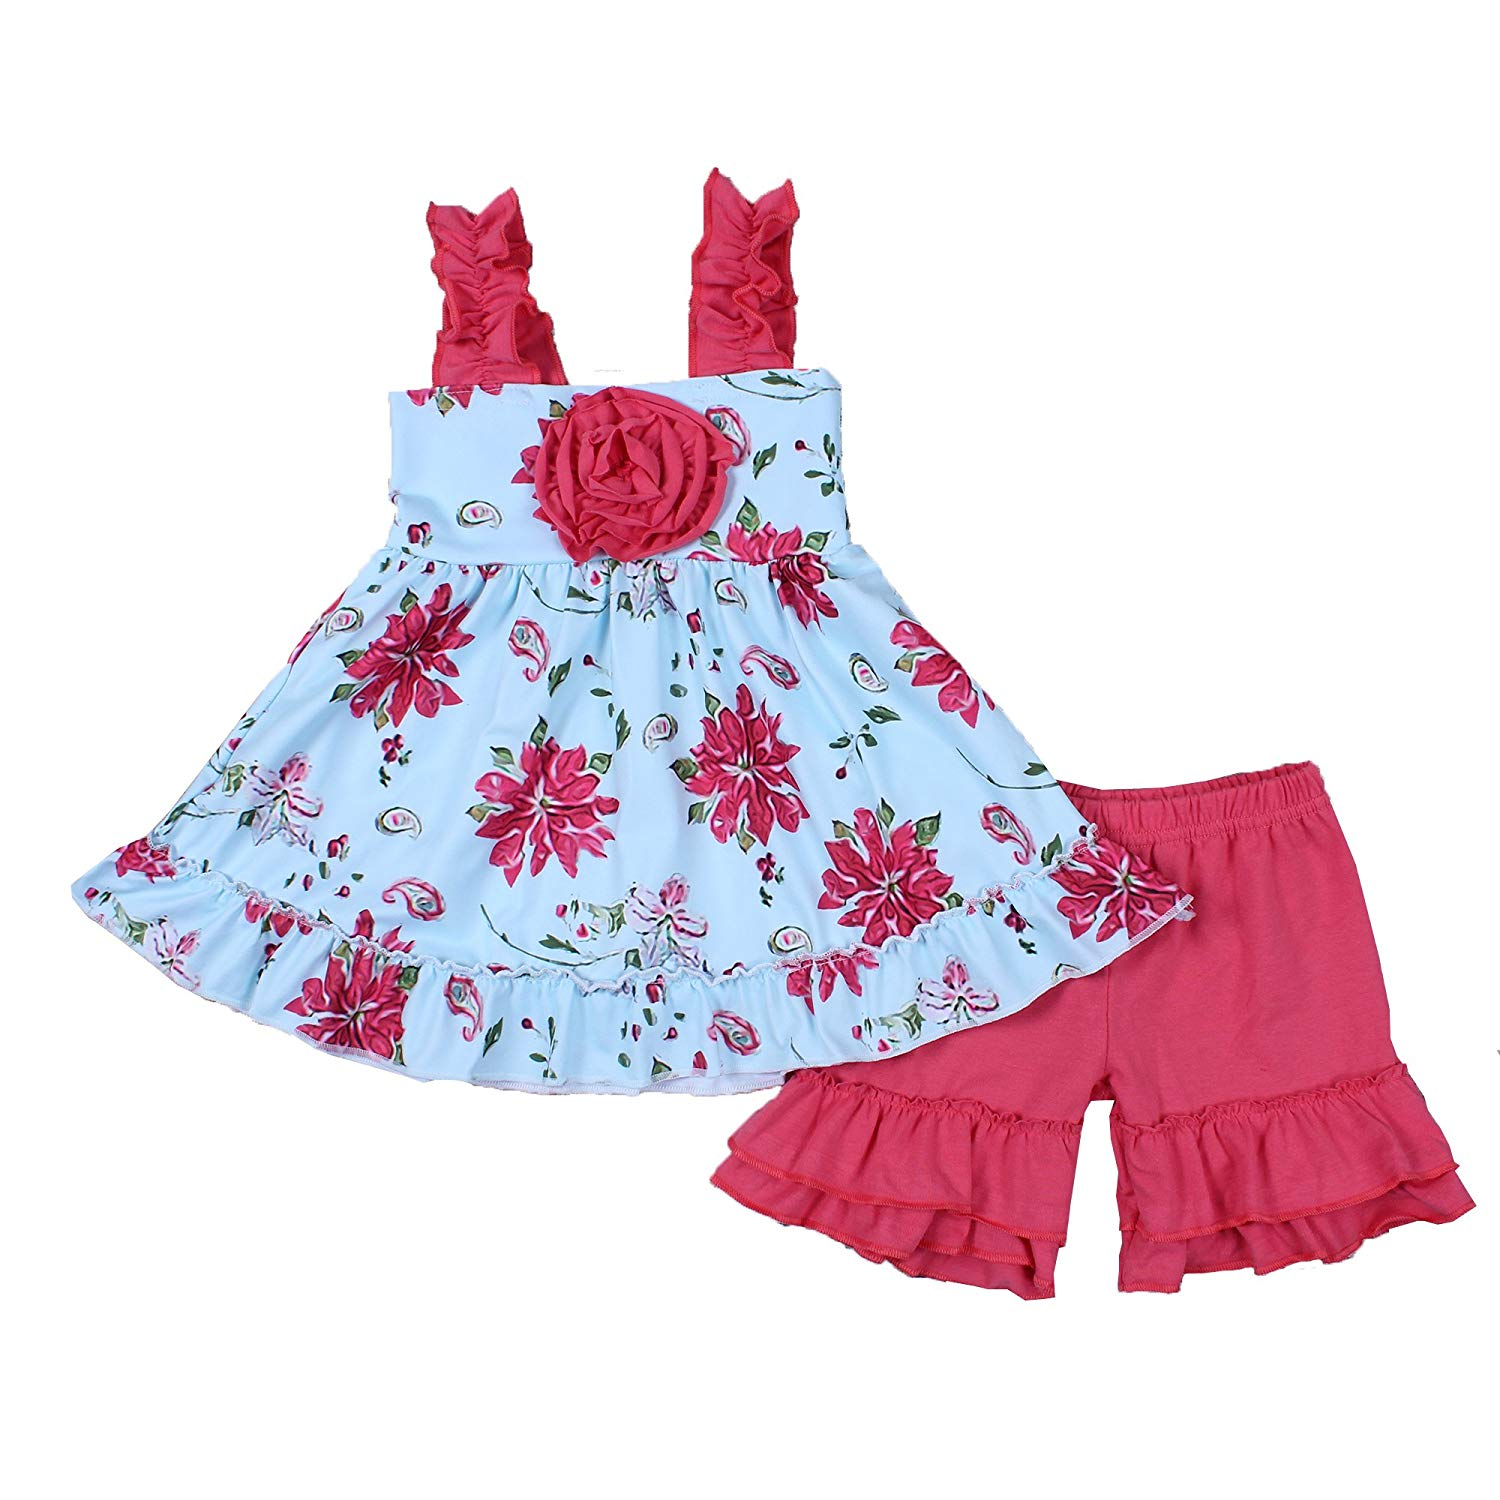 8ddd686e91 Get Quotations · Yawoo Haan Toddler Girls Flower Boutique Outfits Baby 2PCS Ruffle  Clothes Set